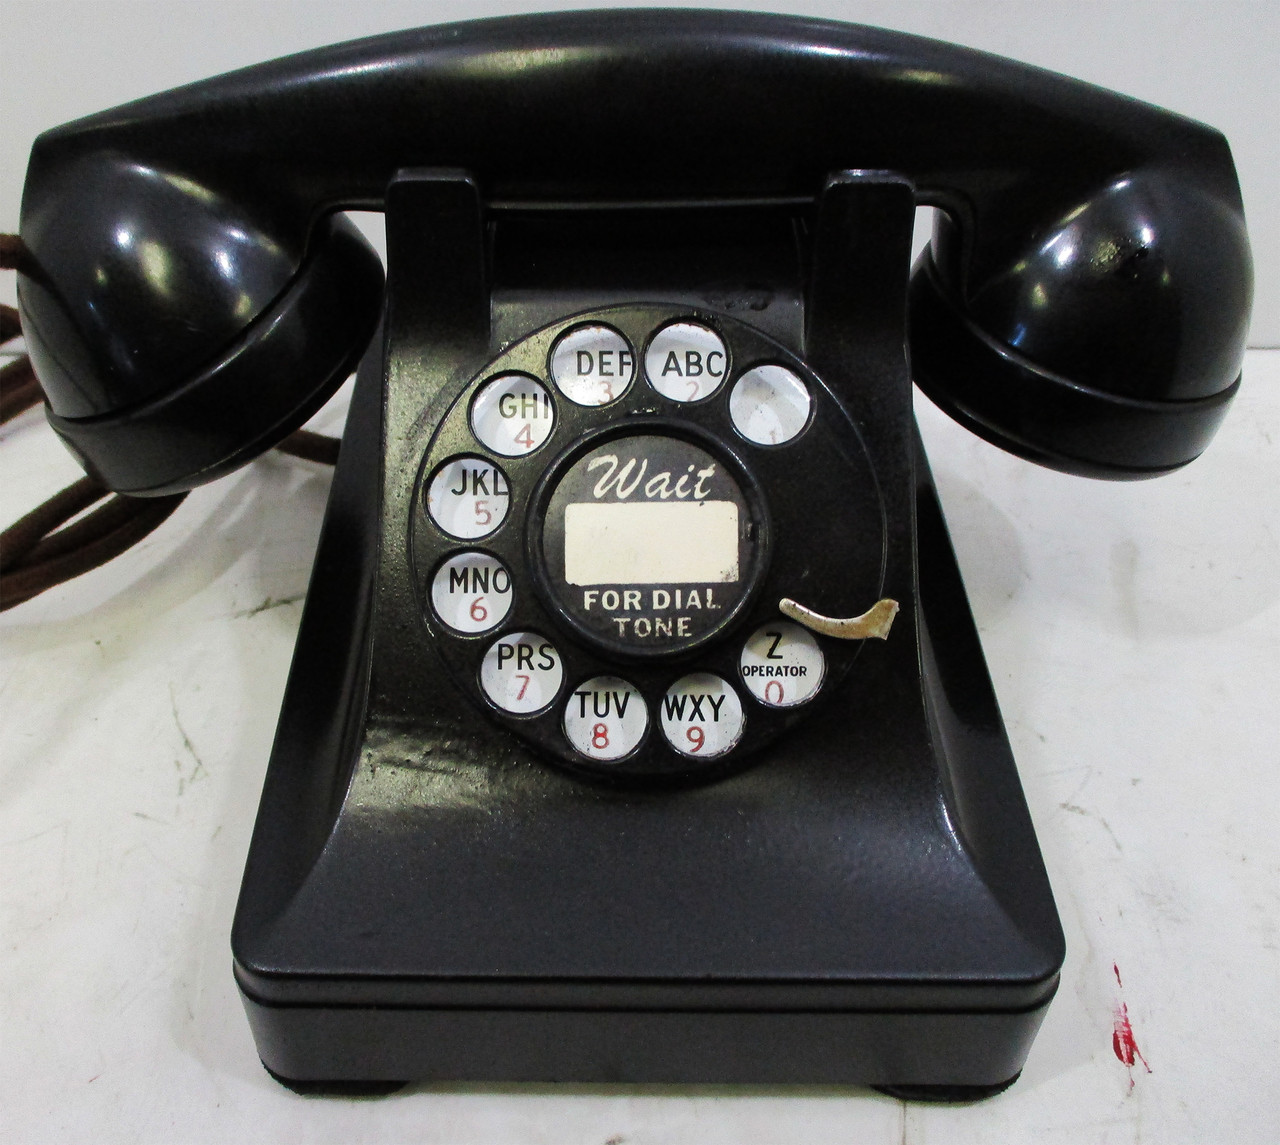 western electric model 302 prewar rotary telephone fully restored 1941 american collectibles [ 1280 x 1145 Pixel ]